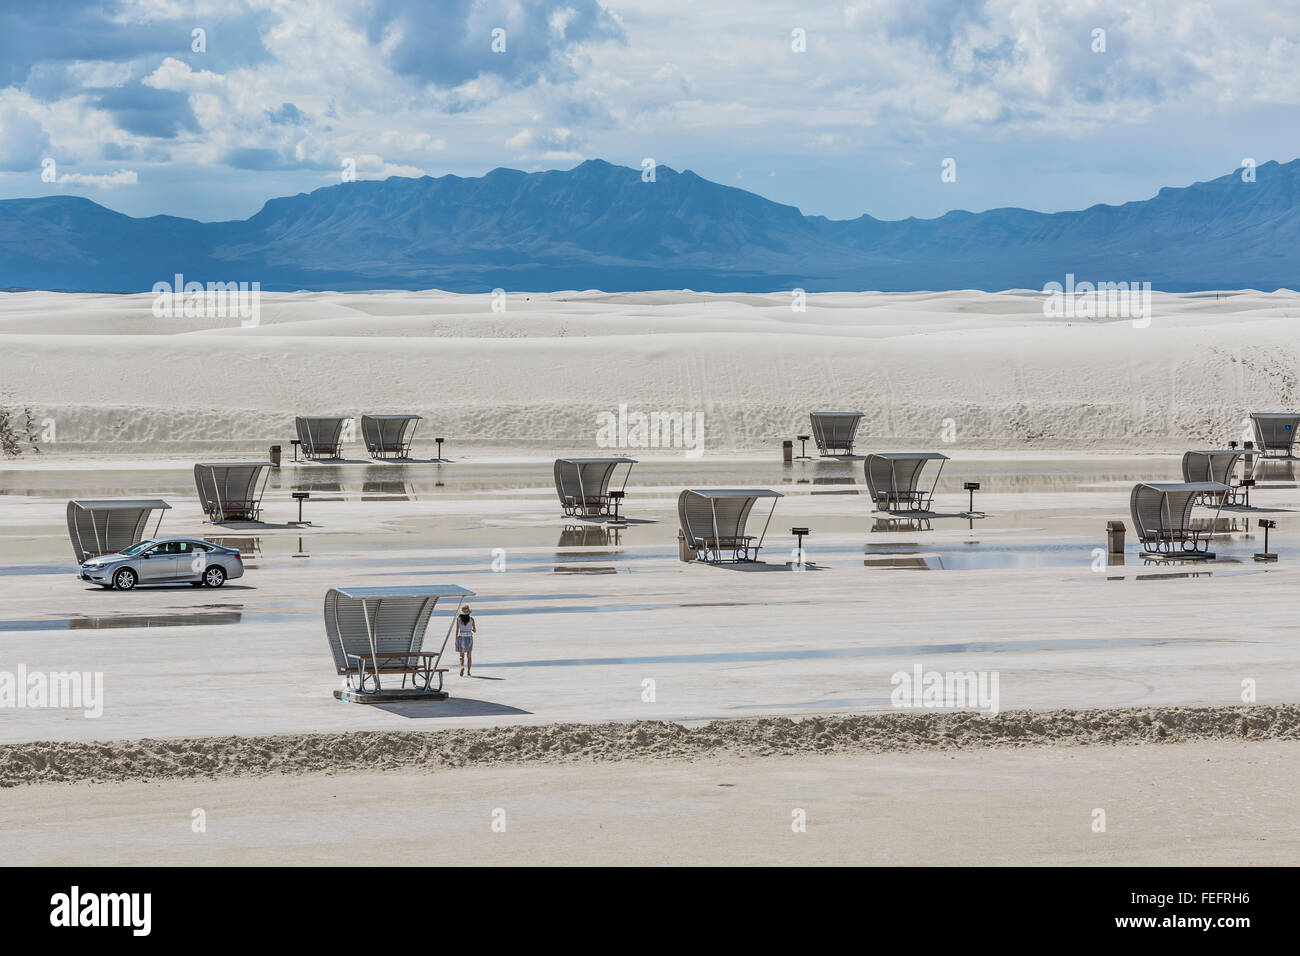 Space age picnic shelters in White Sands National Monument in the Tularosa Basin, New Mexico, USA - Stock Image